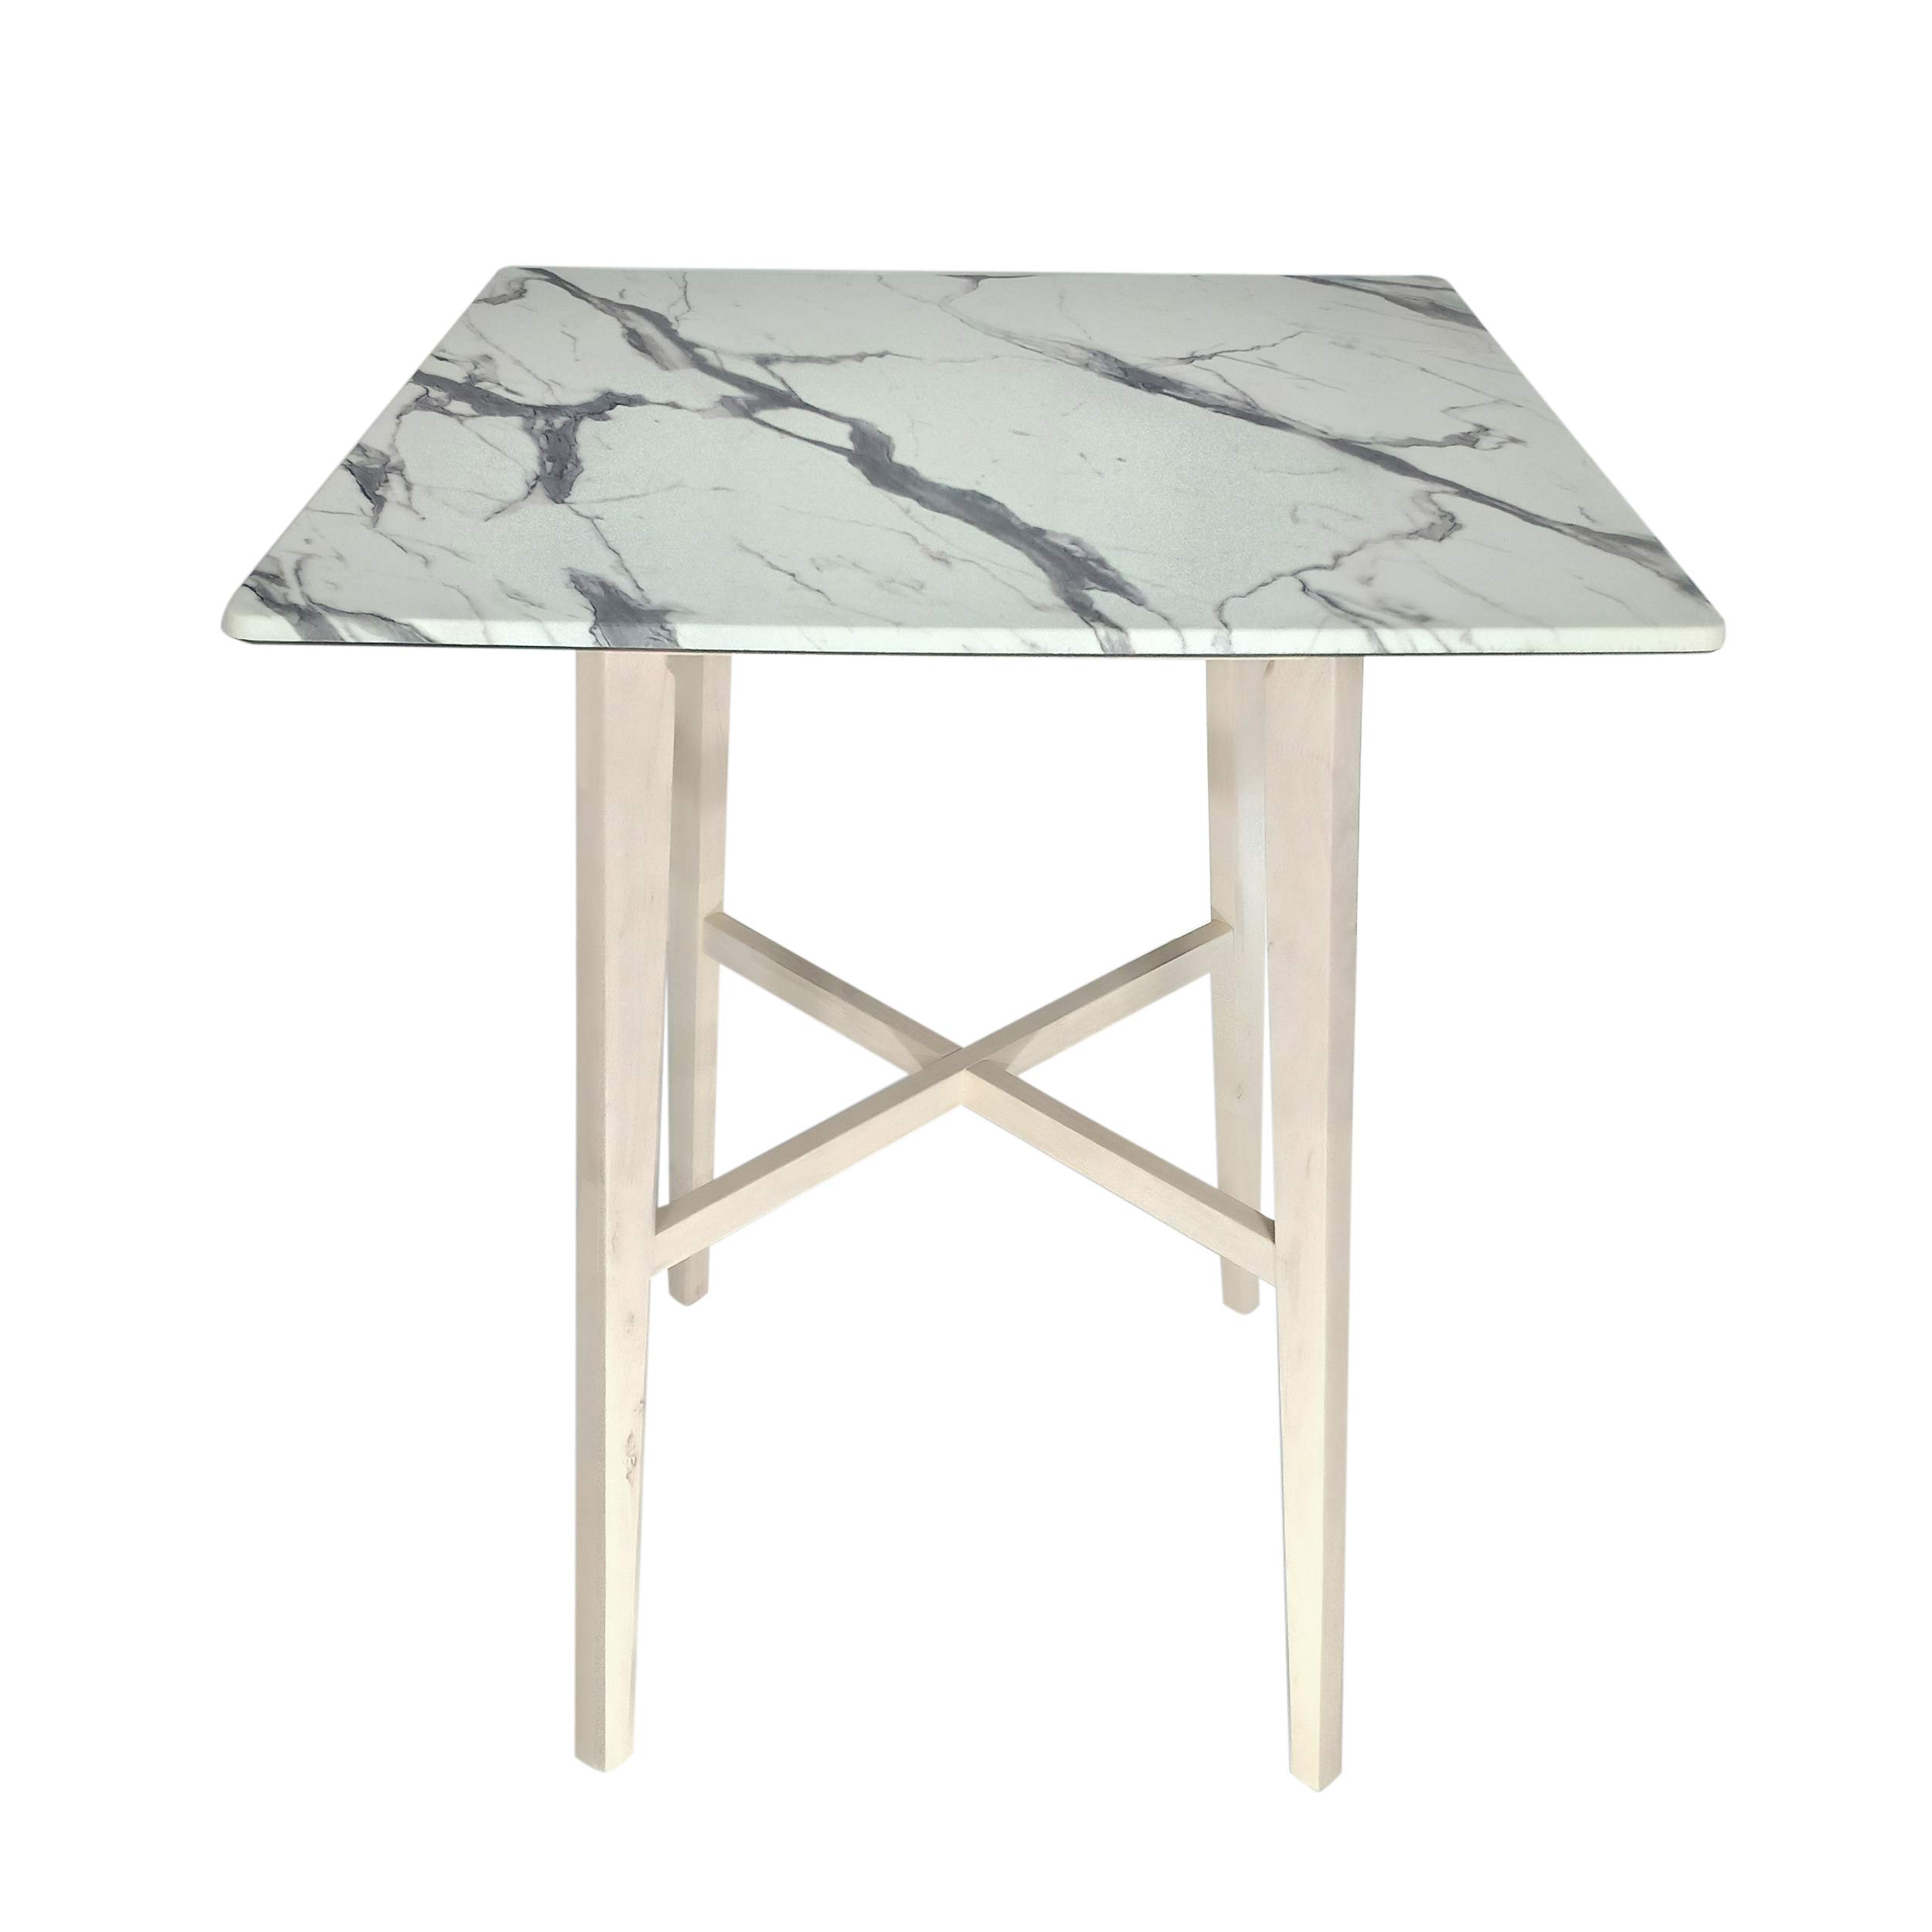 Christopher Knight Home Daisy Modern Bar Rubberwood Legs and Laminate Table Top, Versilia Marble Finish, White Wash by Christopher Knight Home